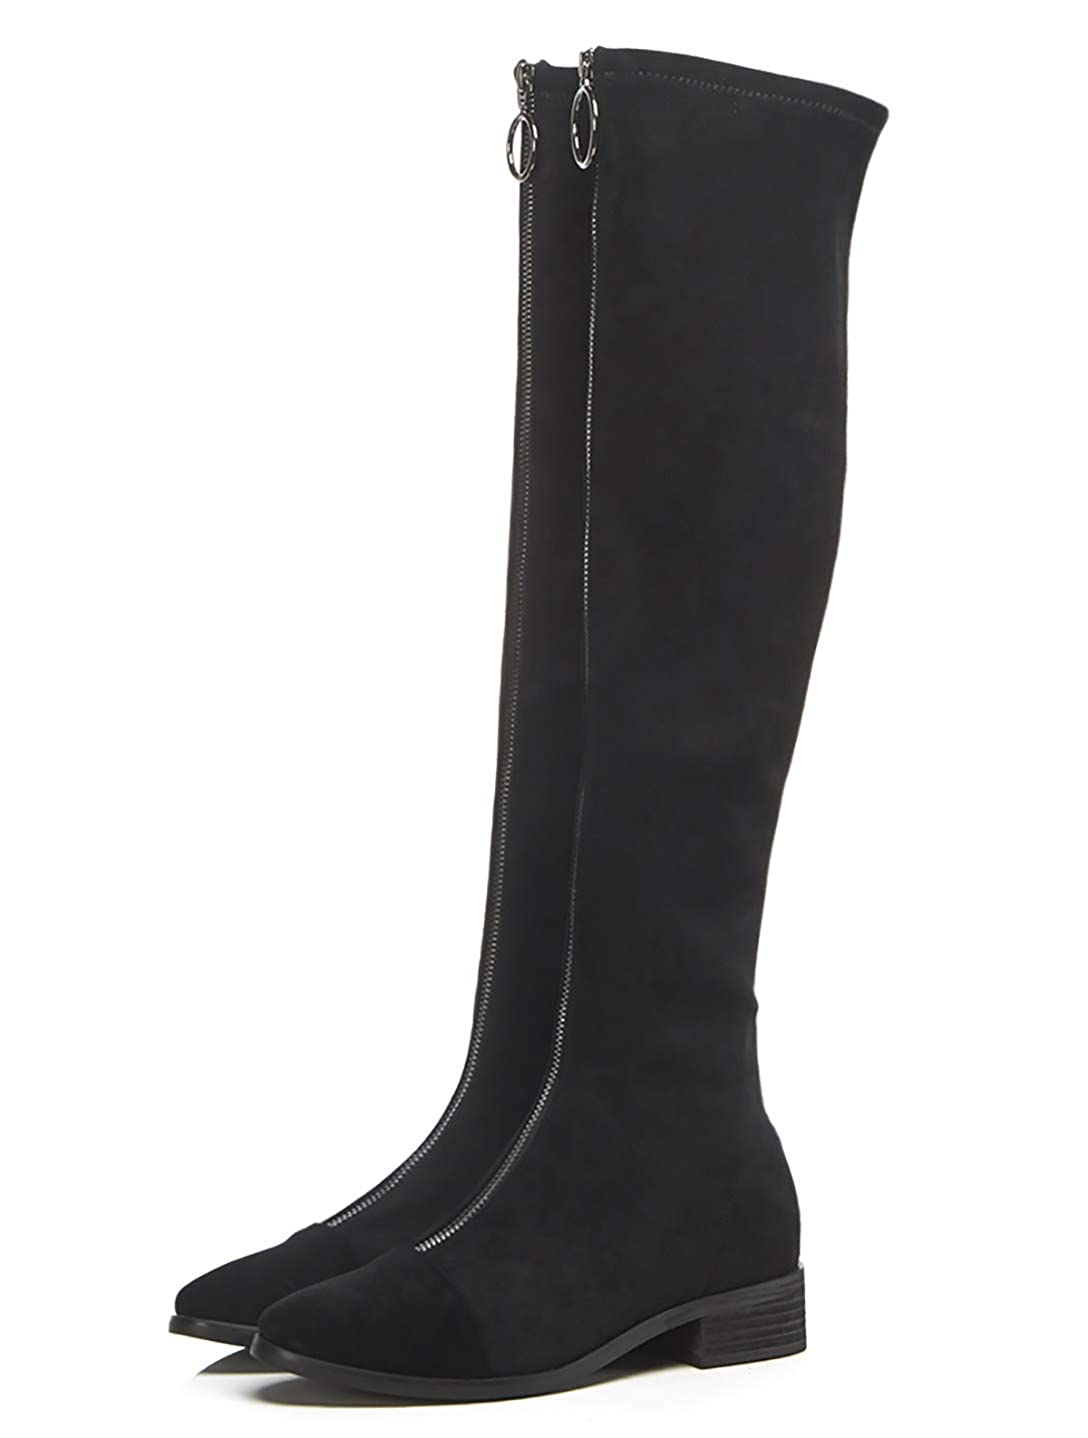 Black MAYPIE Womens ToAnchoS Suede Zipper Over-The-Knee Boots